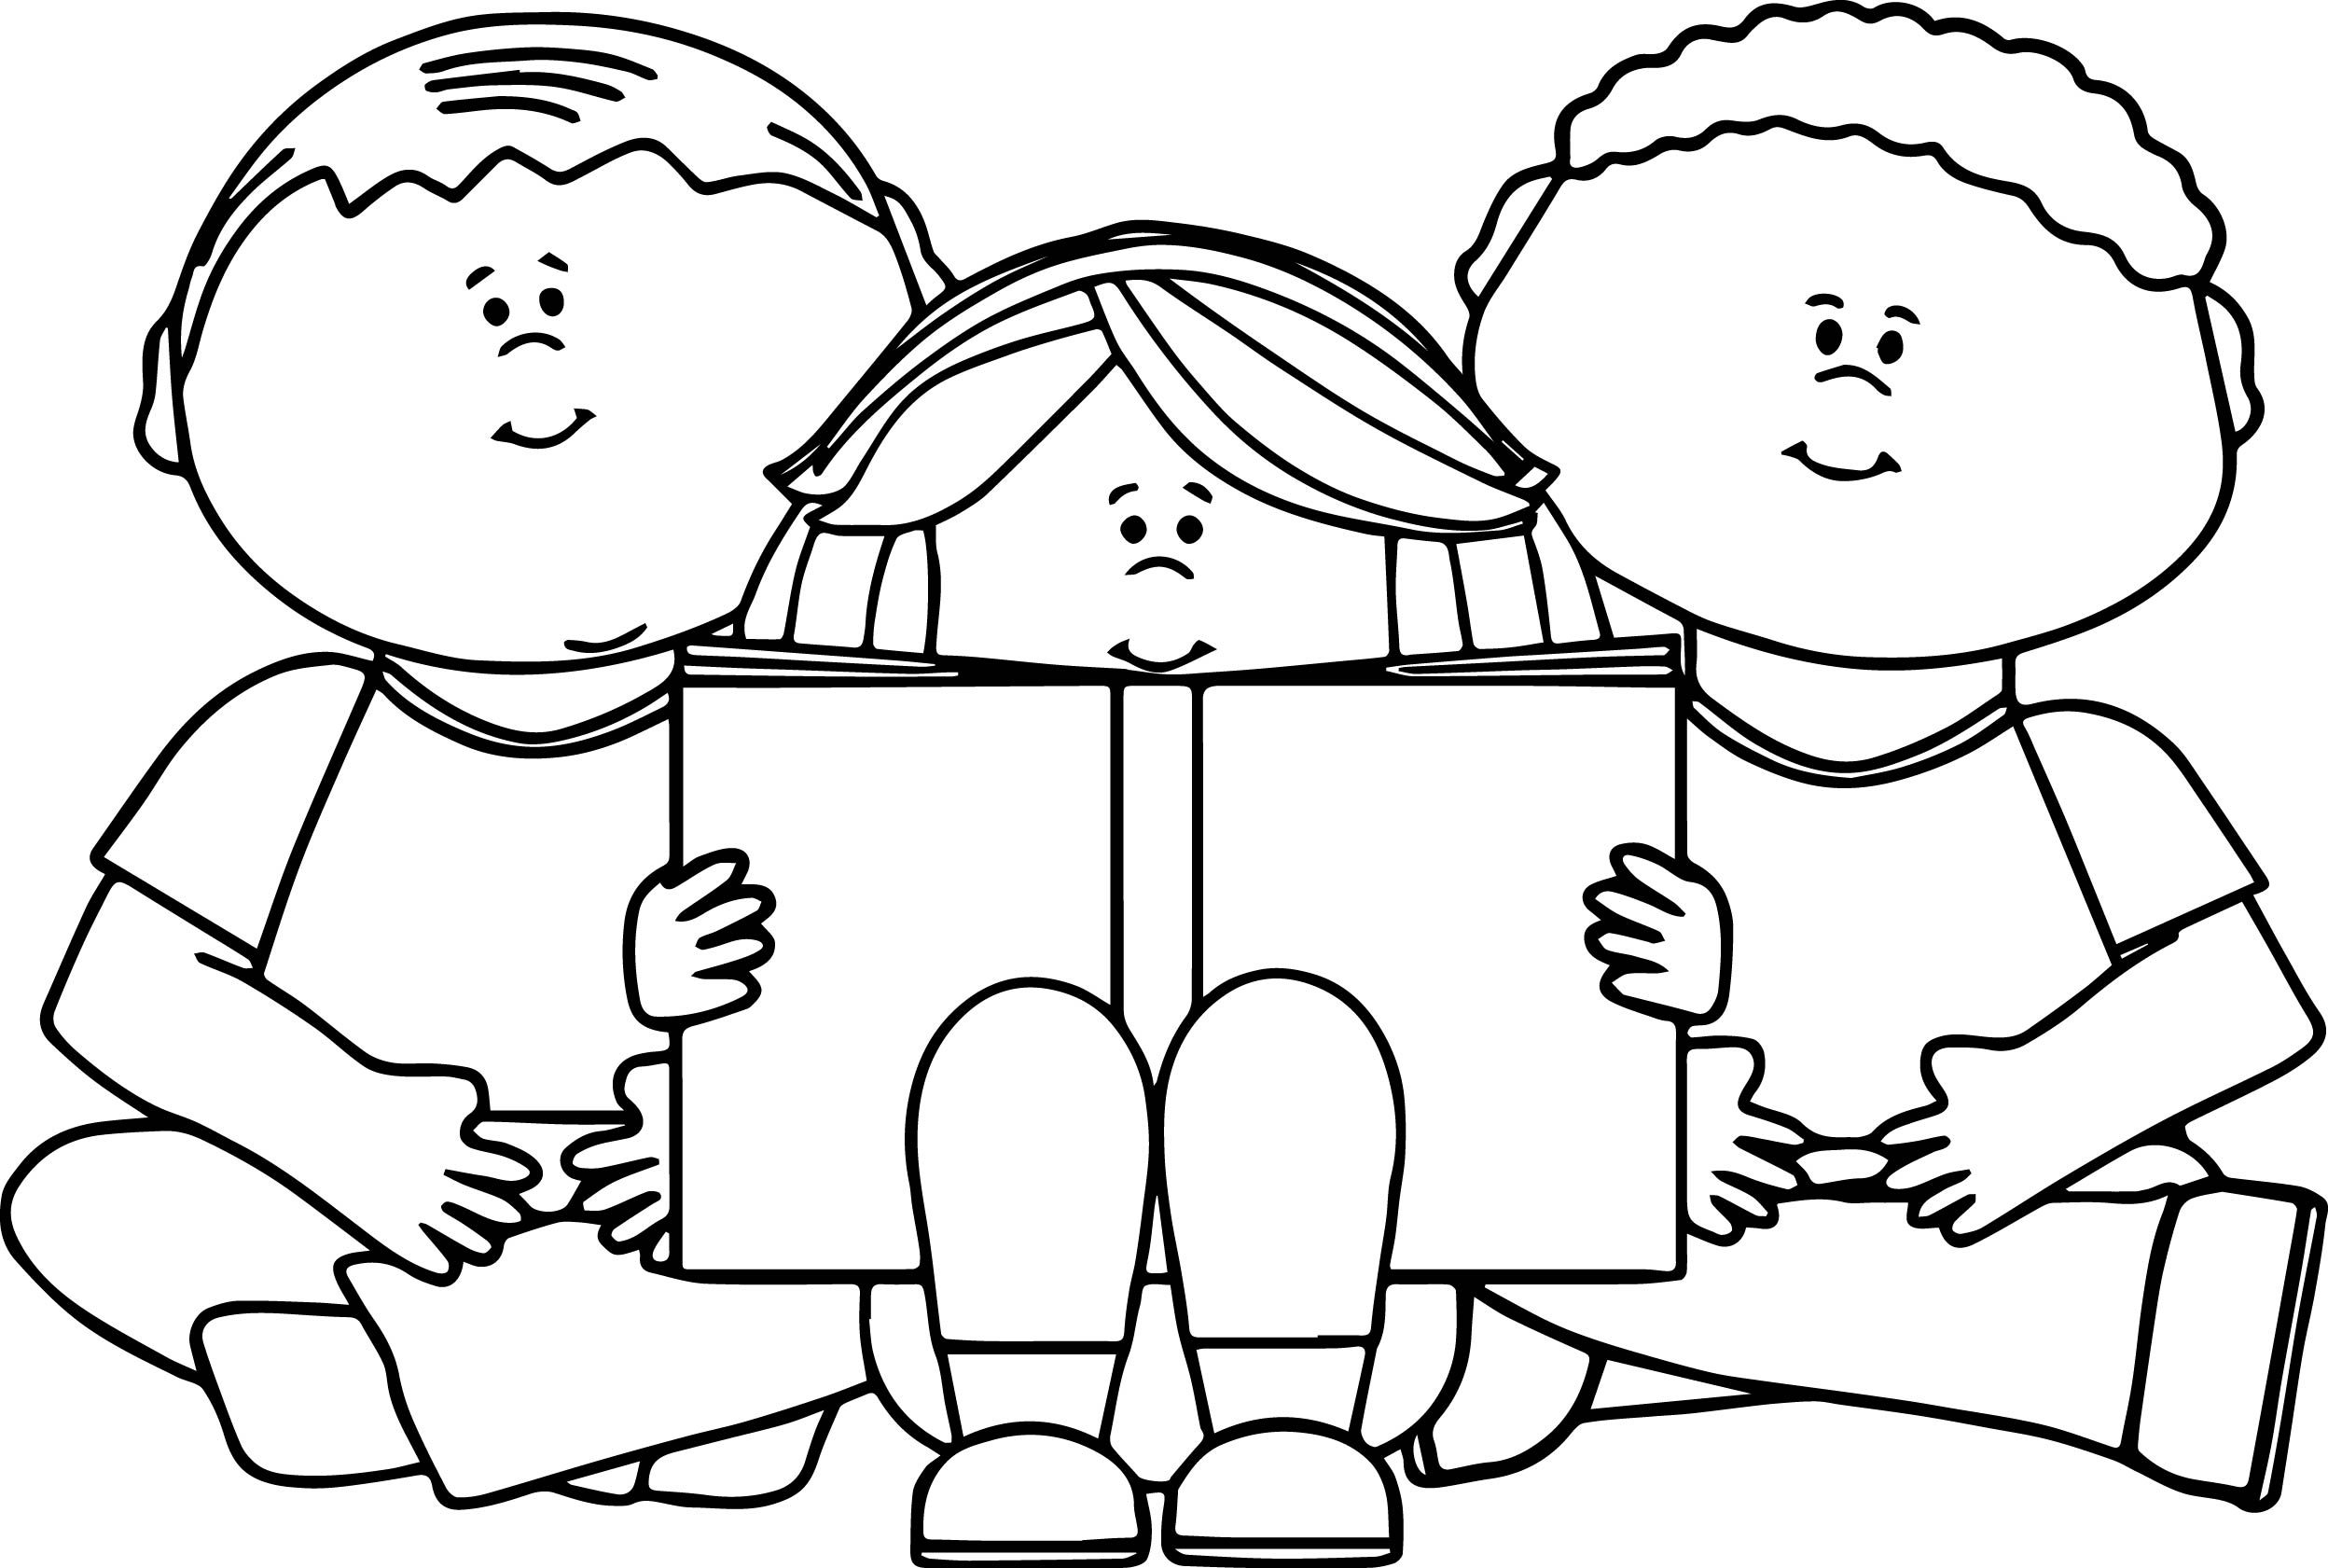 Free coloring pages for reading - Coloring Pages For Reading Free Image